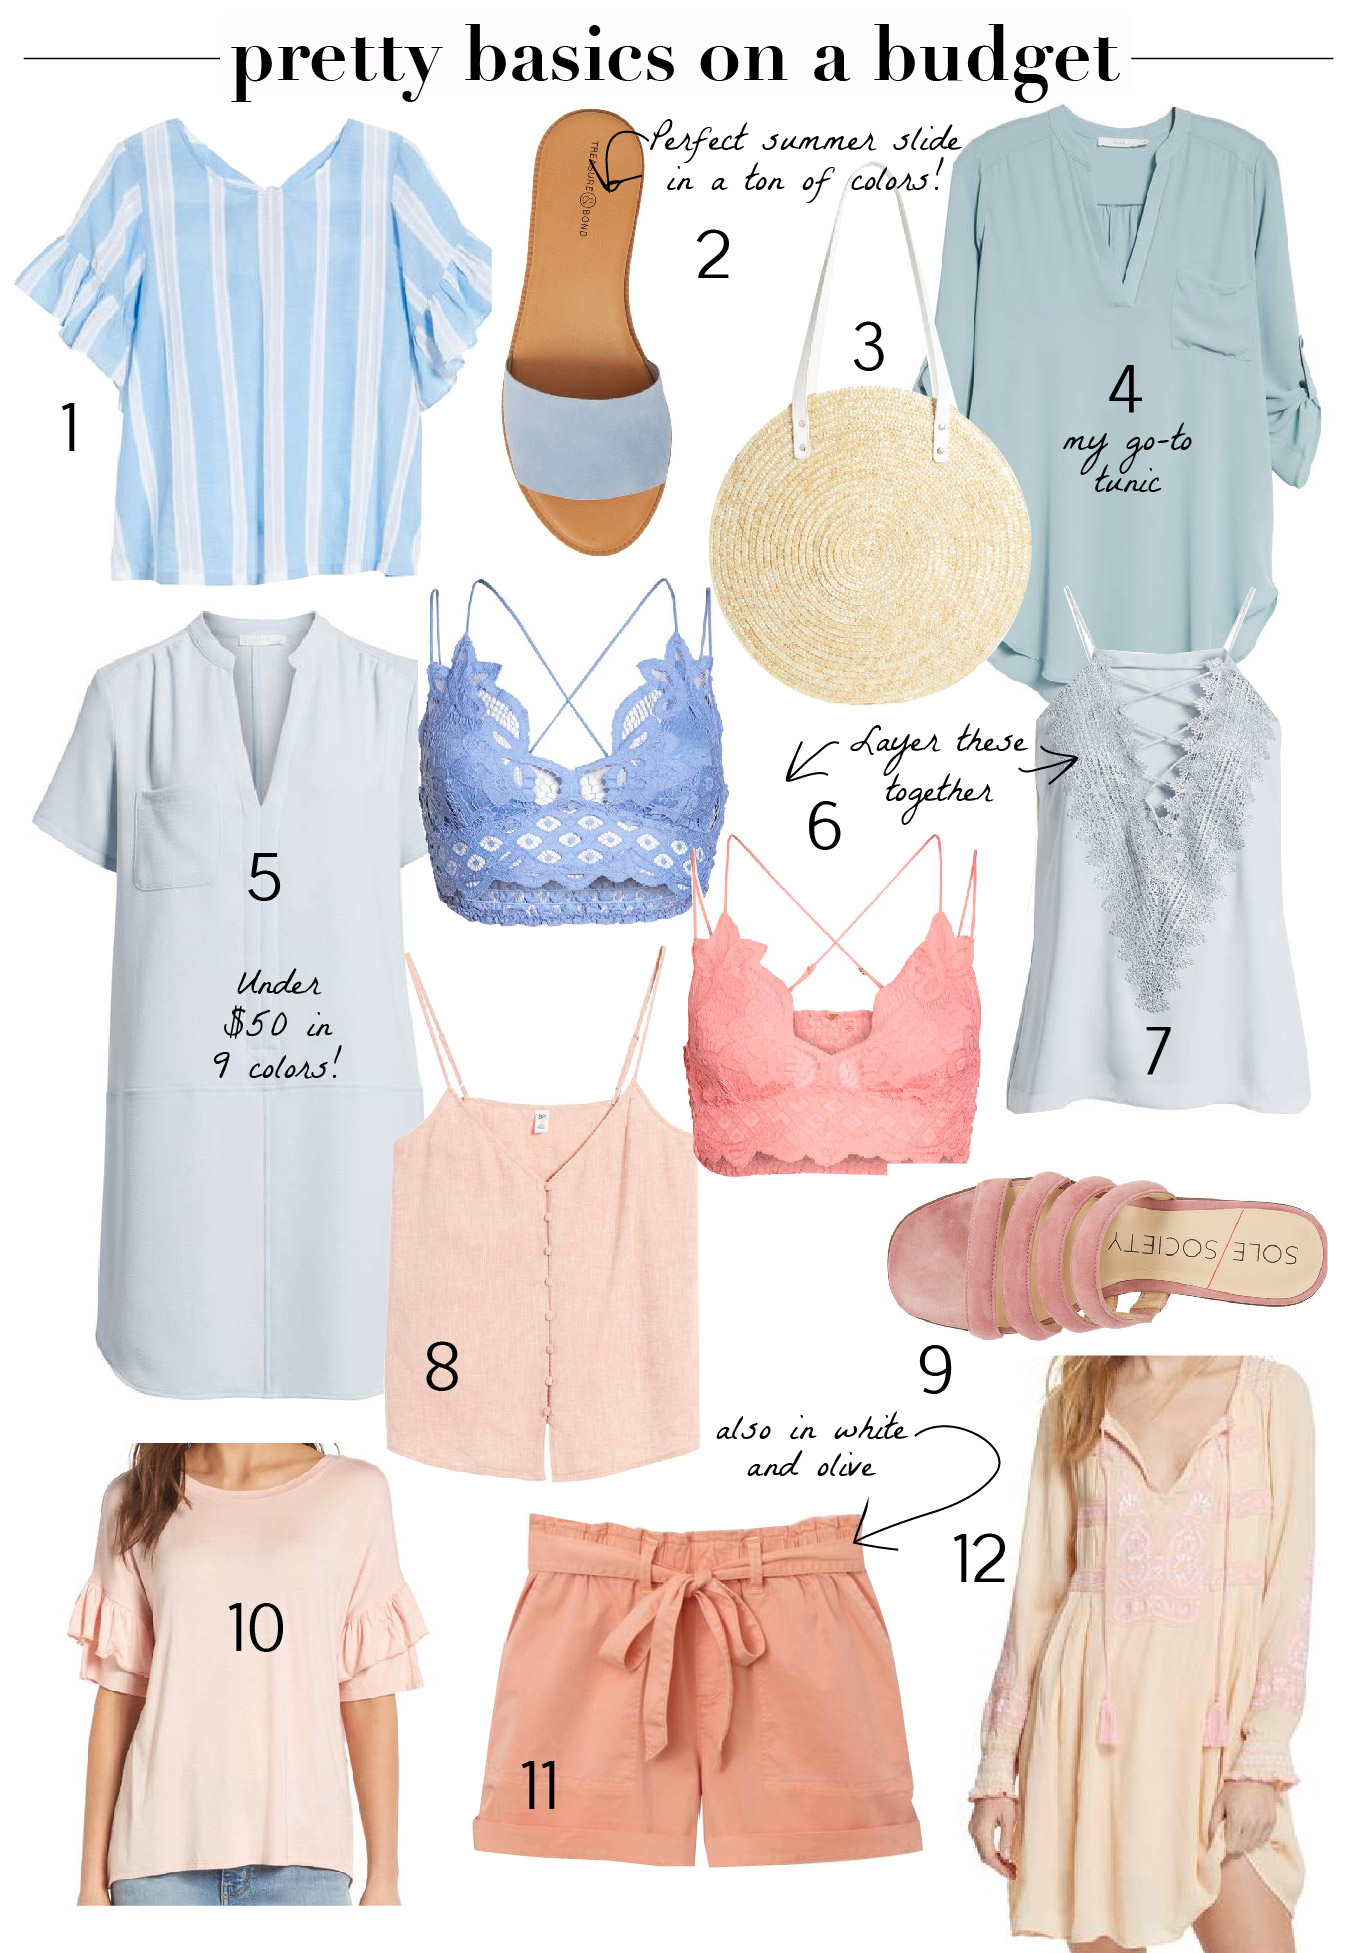 Shopping - Nordstrom Half Yearly 2018 Mom Style Summer Wardrobe Pretty Basics